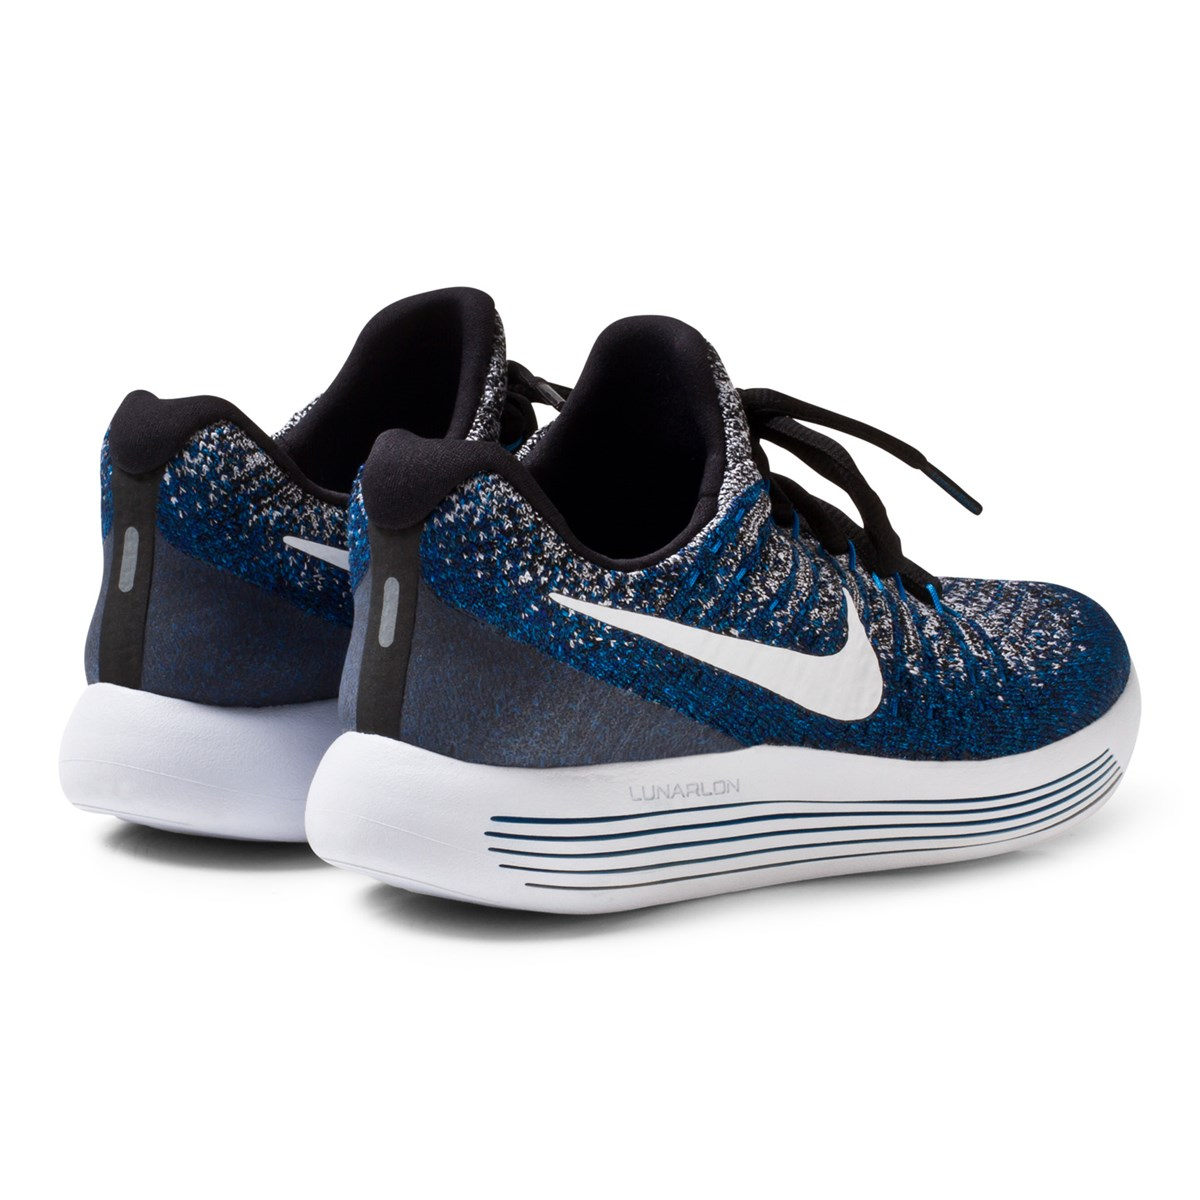 aed53fa21b4ee NIKE - LunarEpic Low Flyknit 2 Junior Running Shoe Blue - Babyshop.com